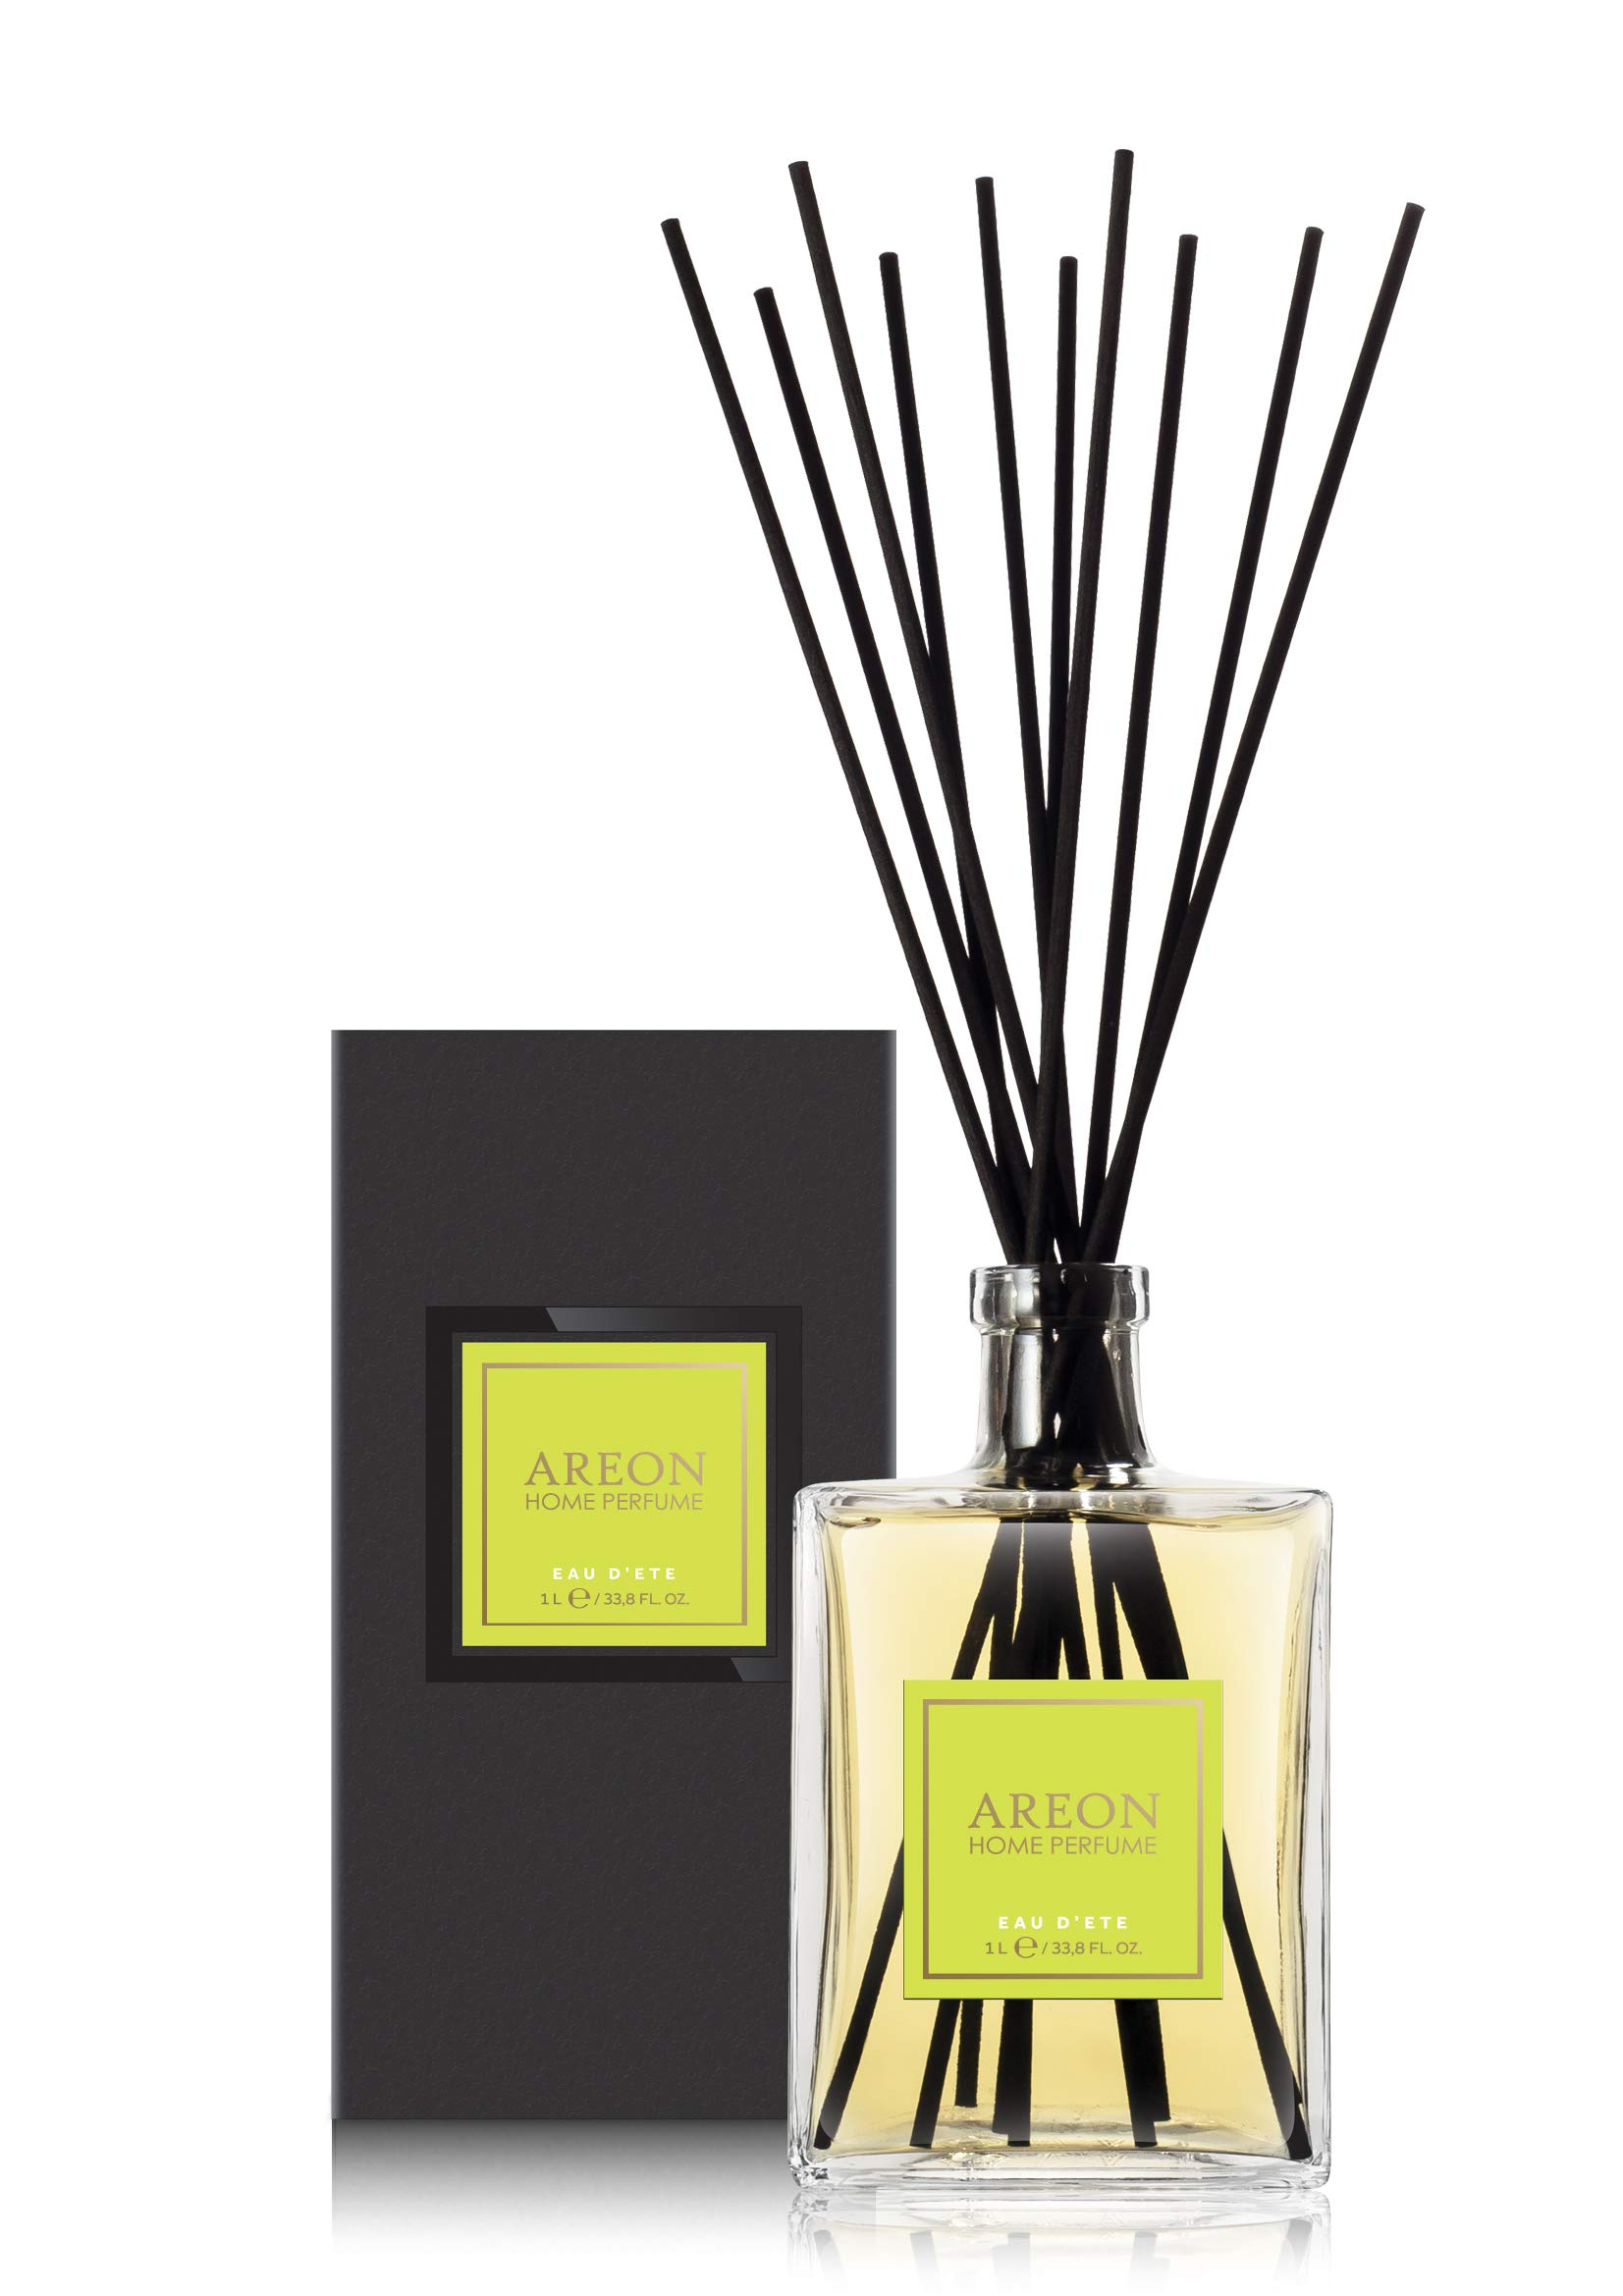 Areon Home Perfume Sticks - 1 Liter (34 OZ) Eau D' ETE by Areon (Image #1)